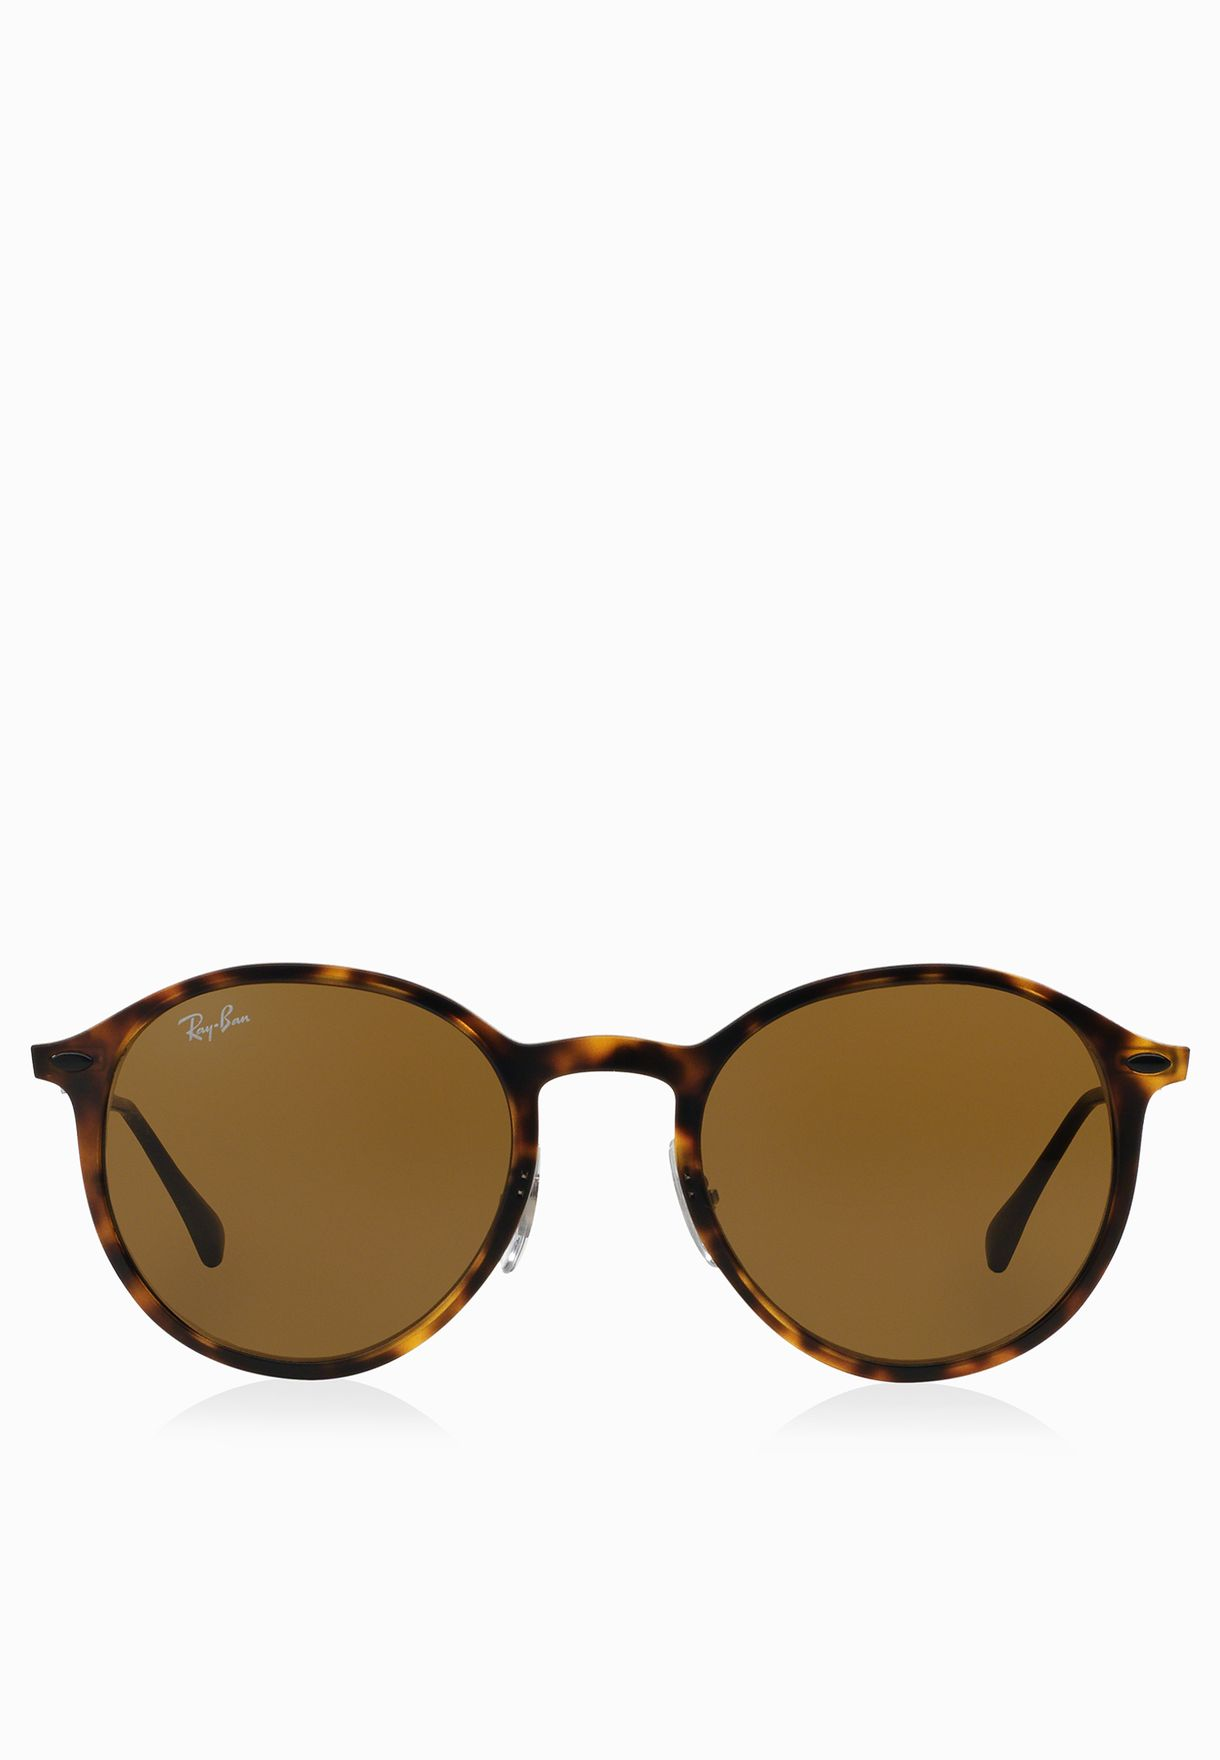 f70599d137c8e Shop Ray-Ban browns Tech Light Ray Round Sunglasses 8053672441208 ...